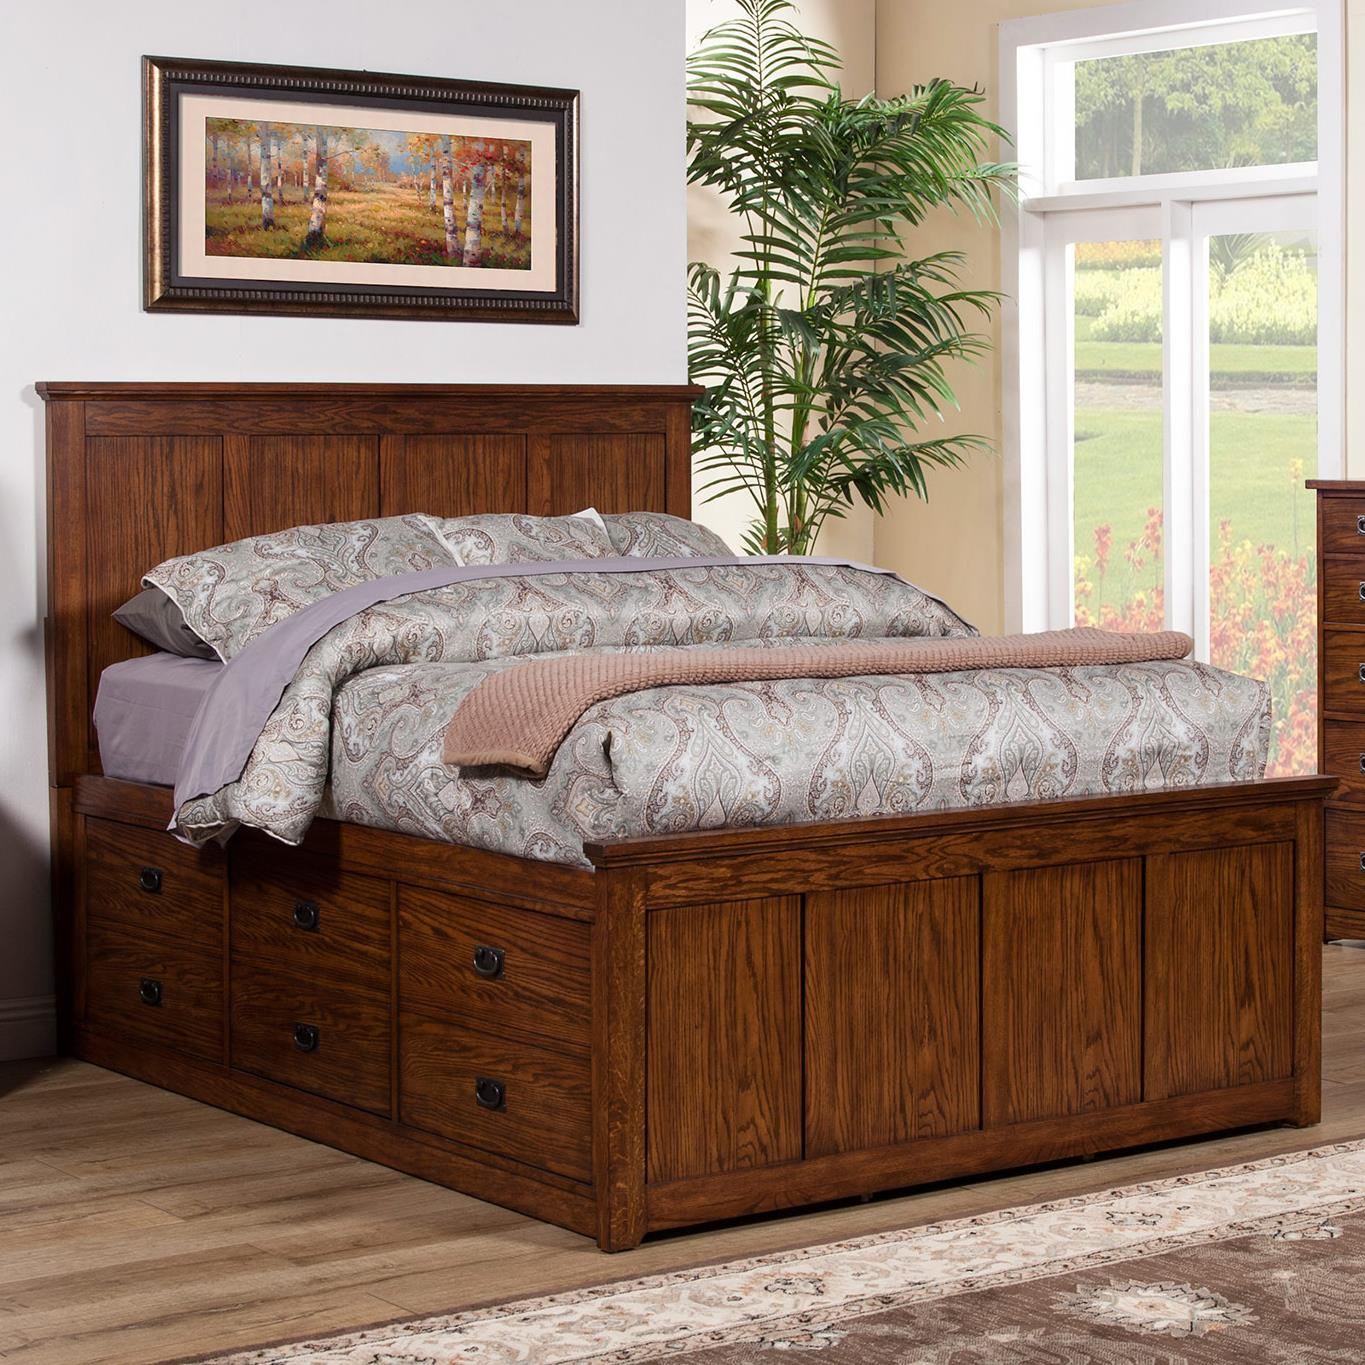 hanover product beds storage value mattresses with bedroom cherry city drawers furniture item bed queen and